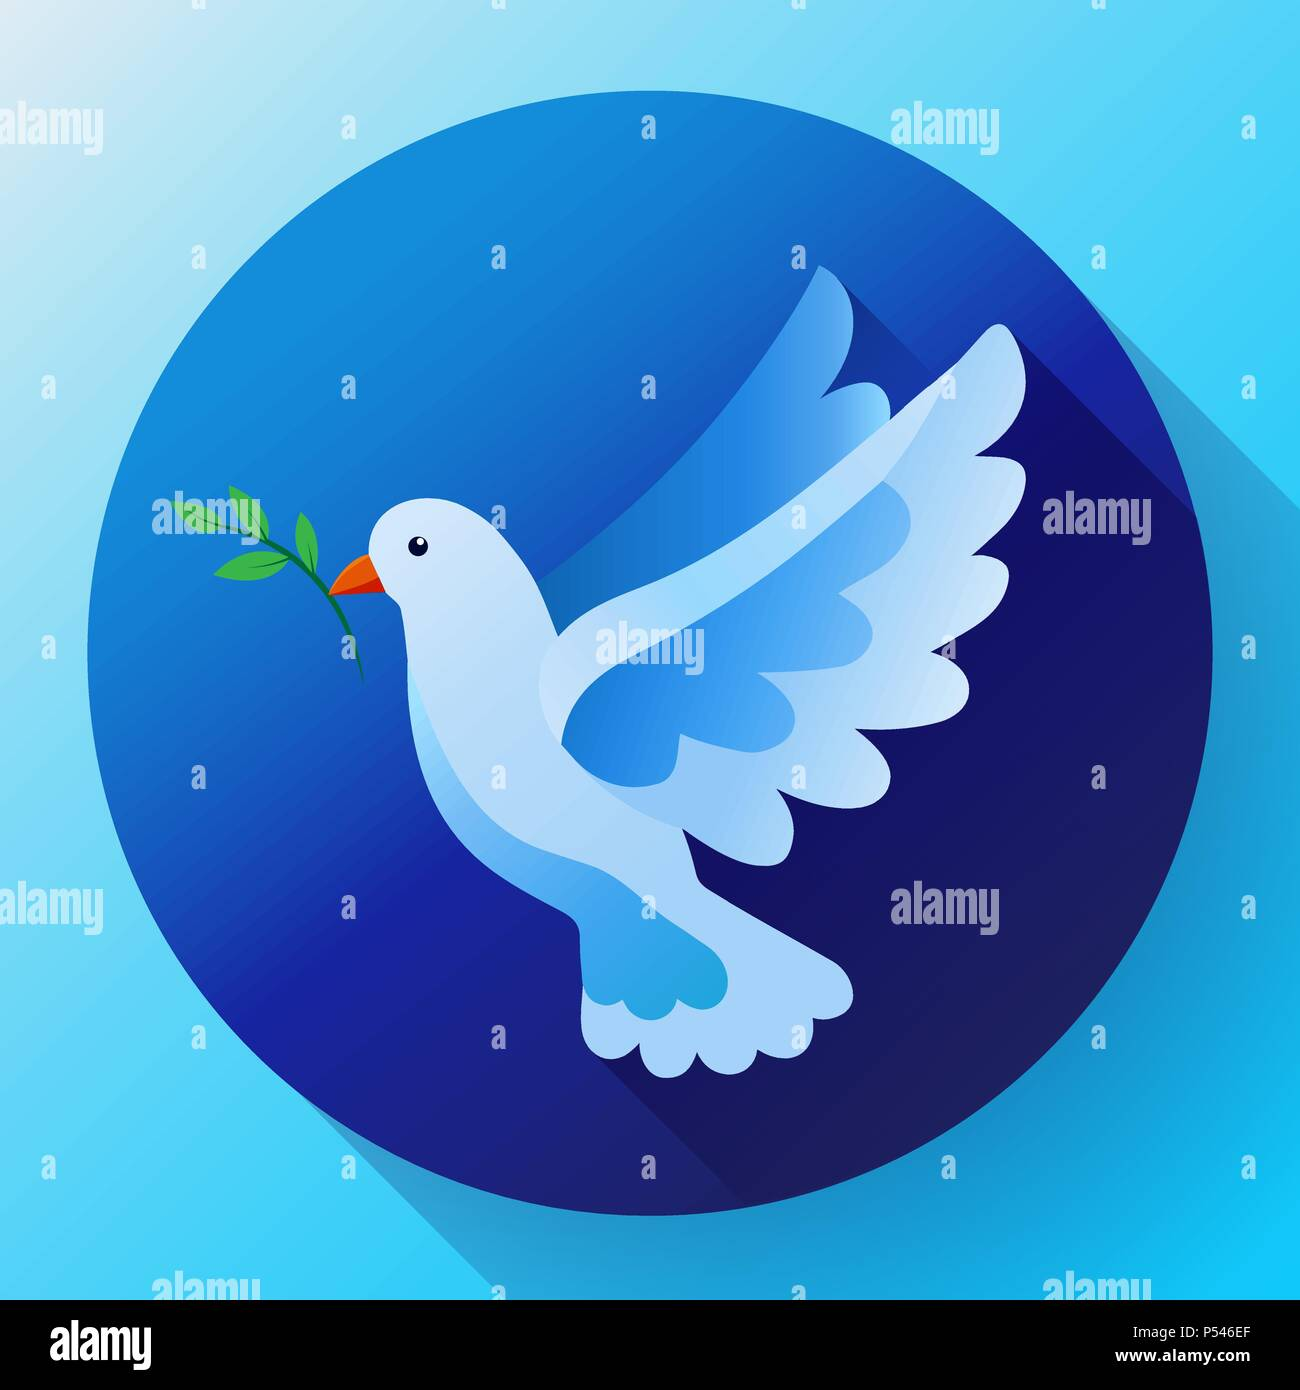 Blue Dove With Branch Peace Icon Flying Blue Bird And Peace Concept